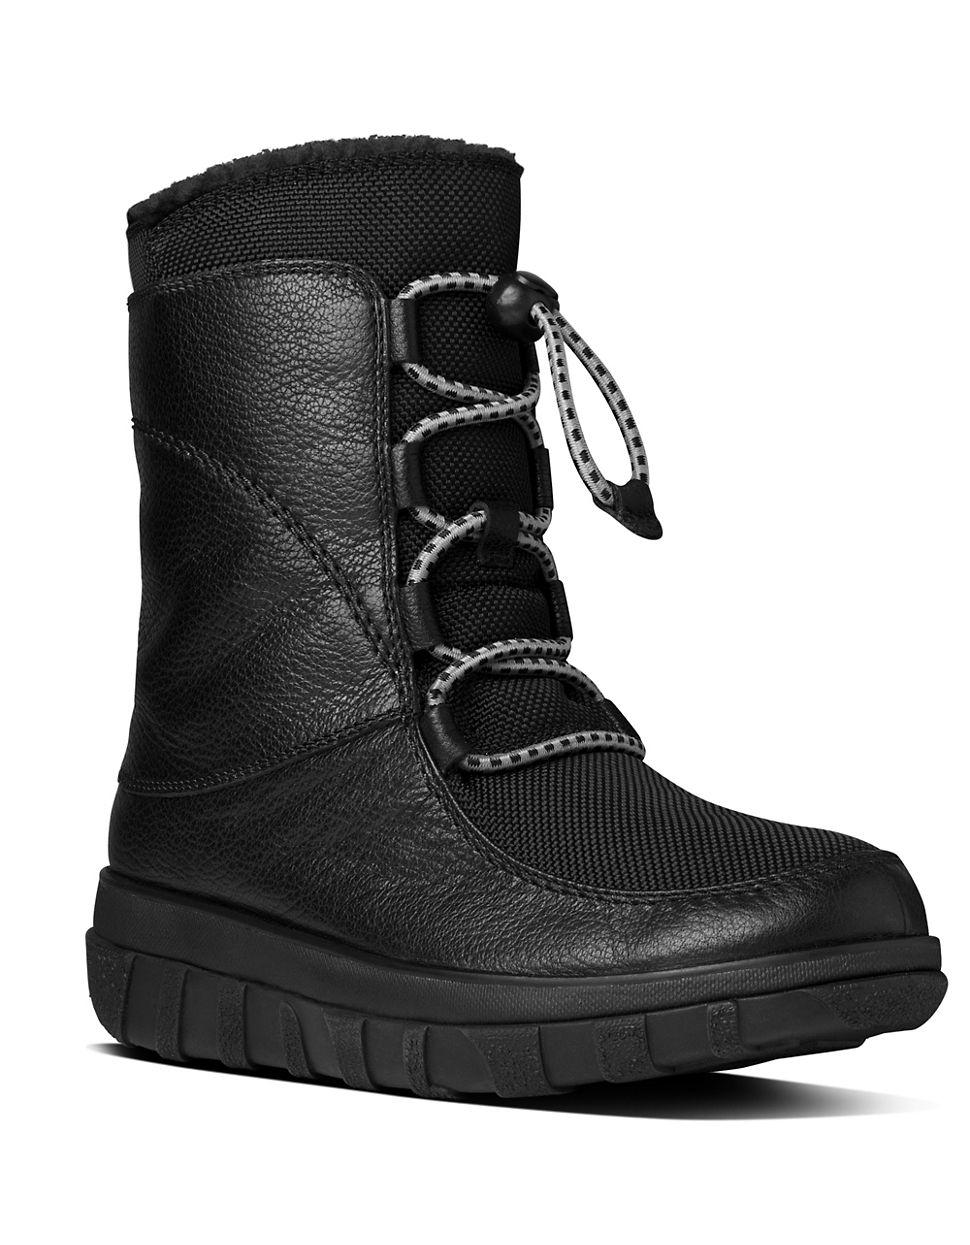 fitflop sportylace tm lace up leather boots in black lyst